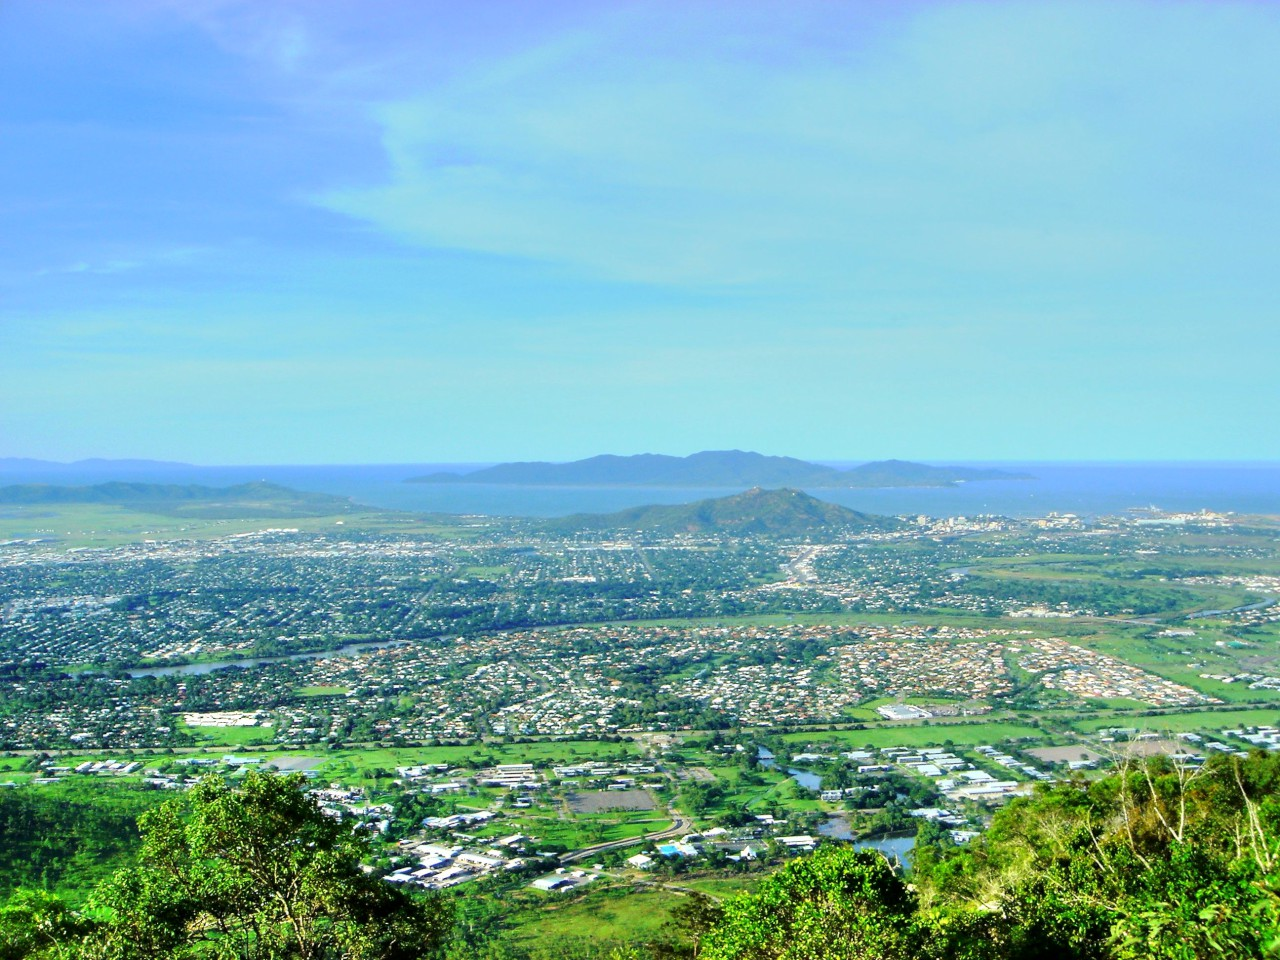 Townsville Image 2